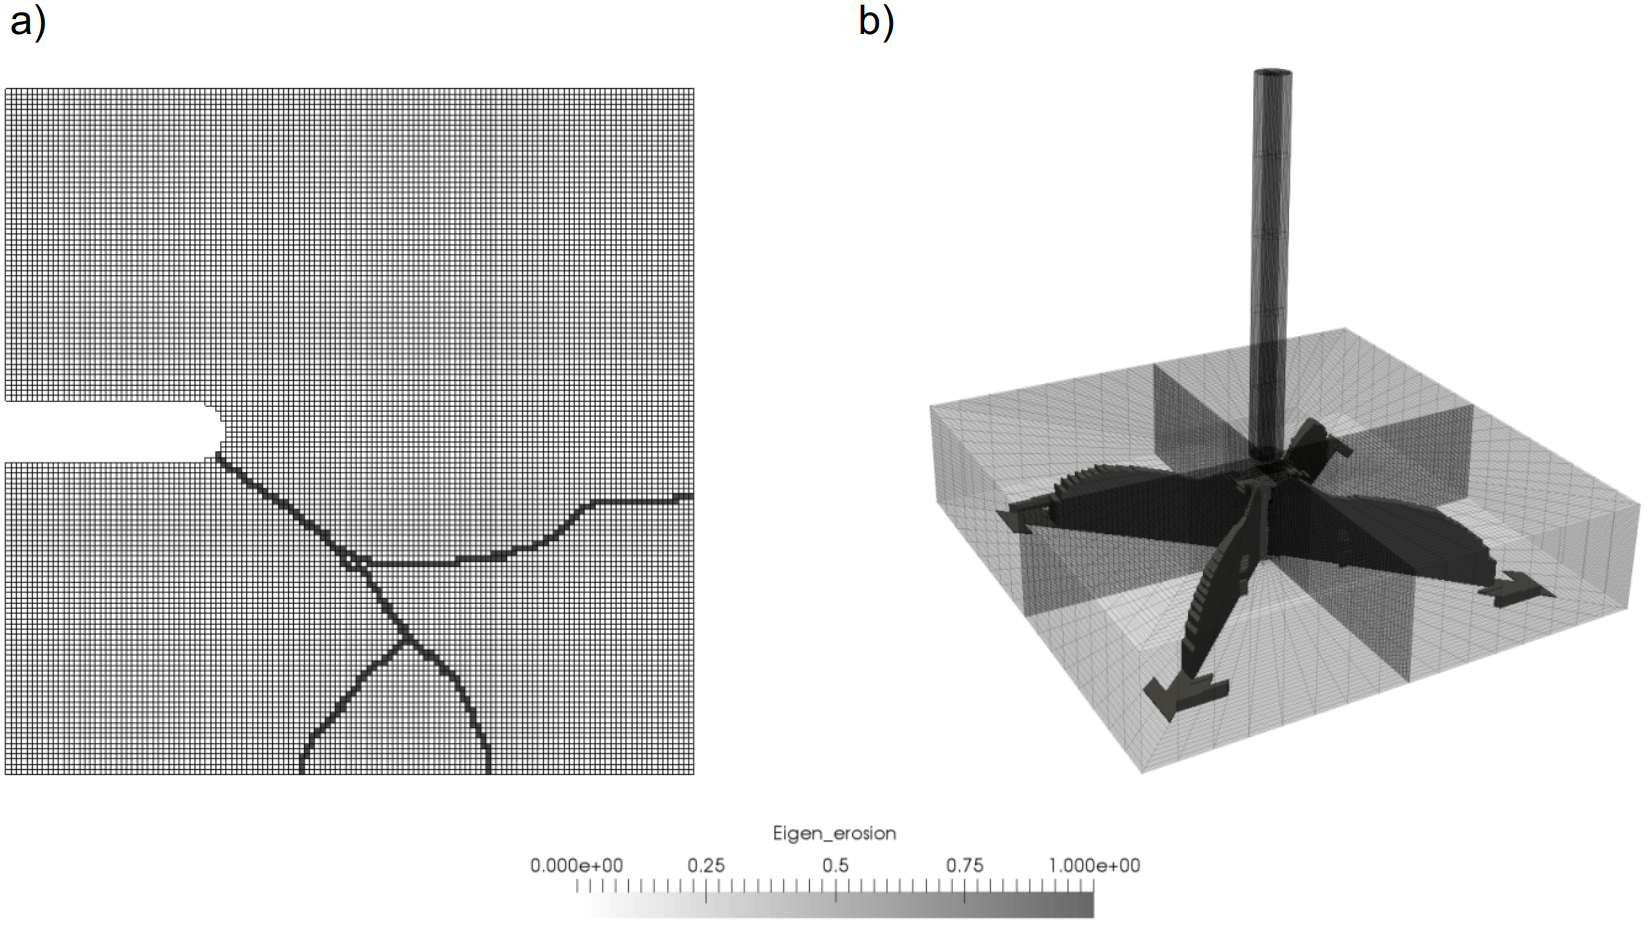 Crack propagation represented by the eigenerosion approach for a) a CT-specimen (Qinami, Pandolfi, Kaliske, IJNME 2019), b) impact on concrete plate.